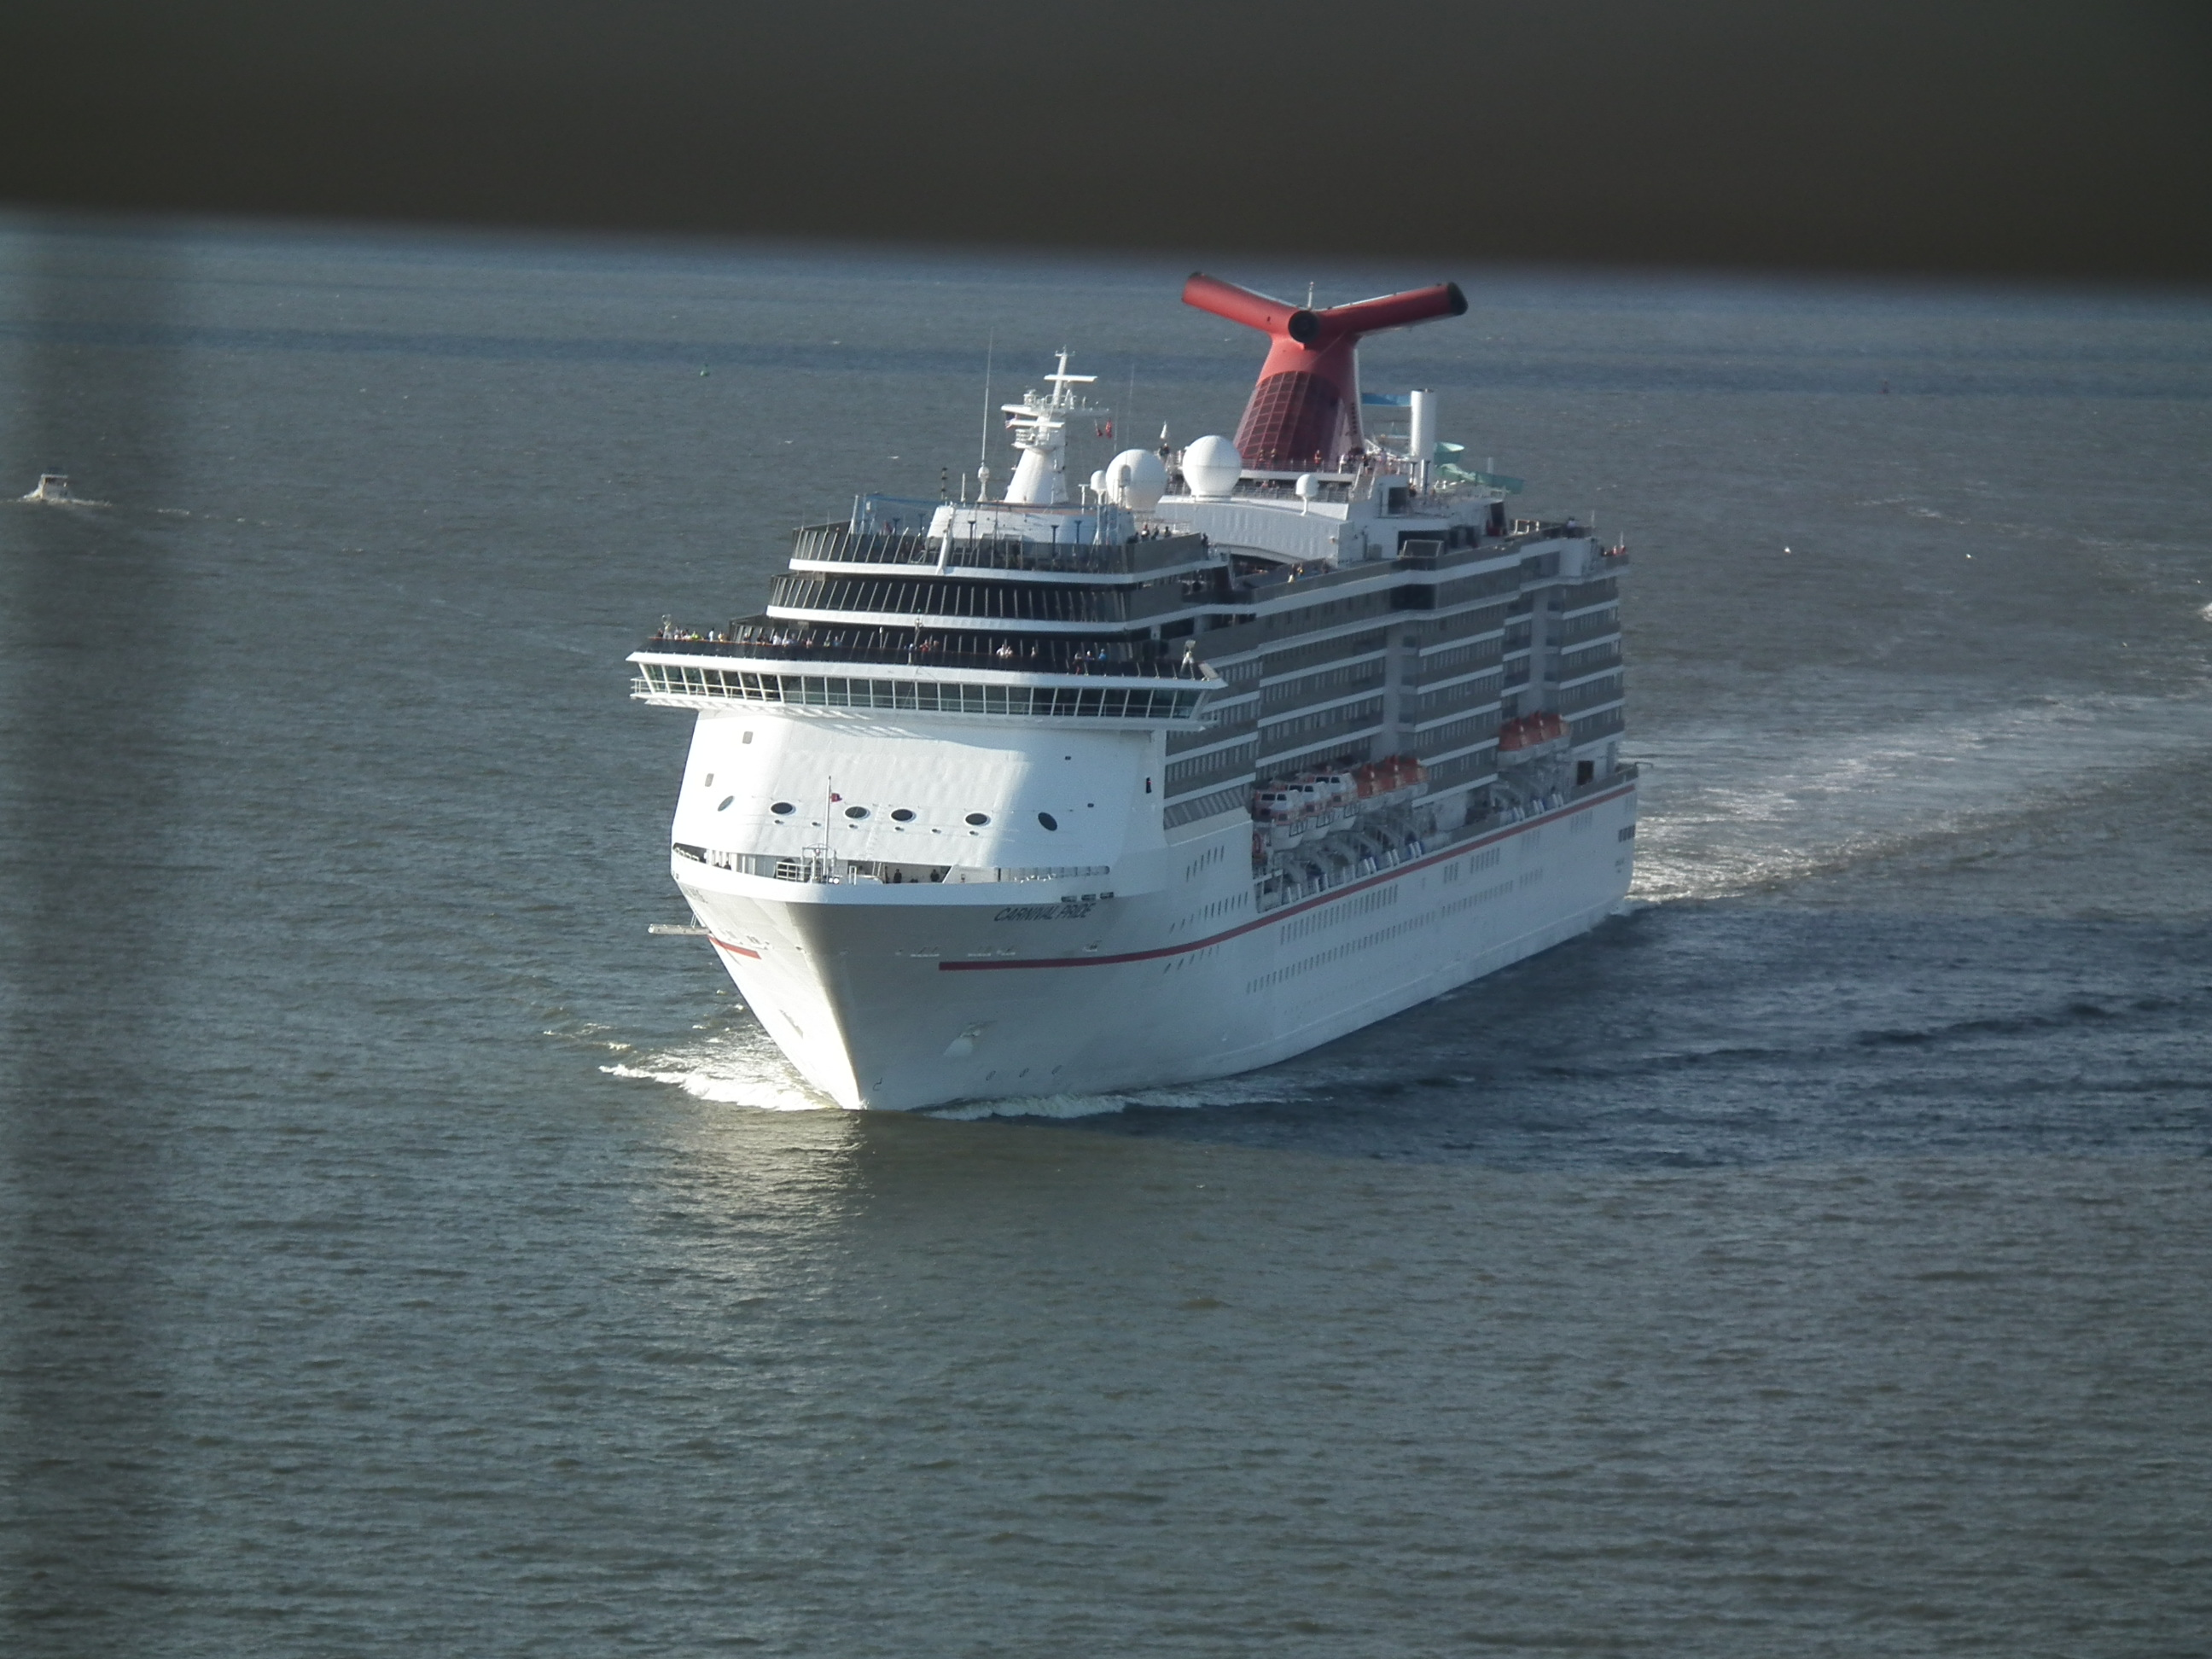 Coast Guard rescue of passenger from Carnival Pride in Atlantic